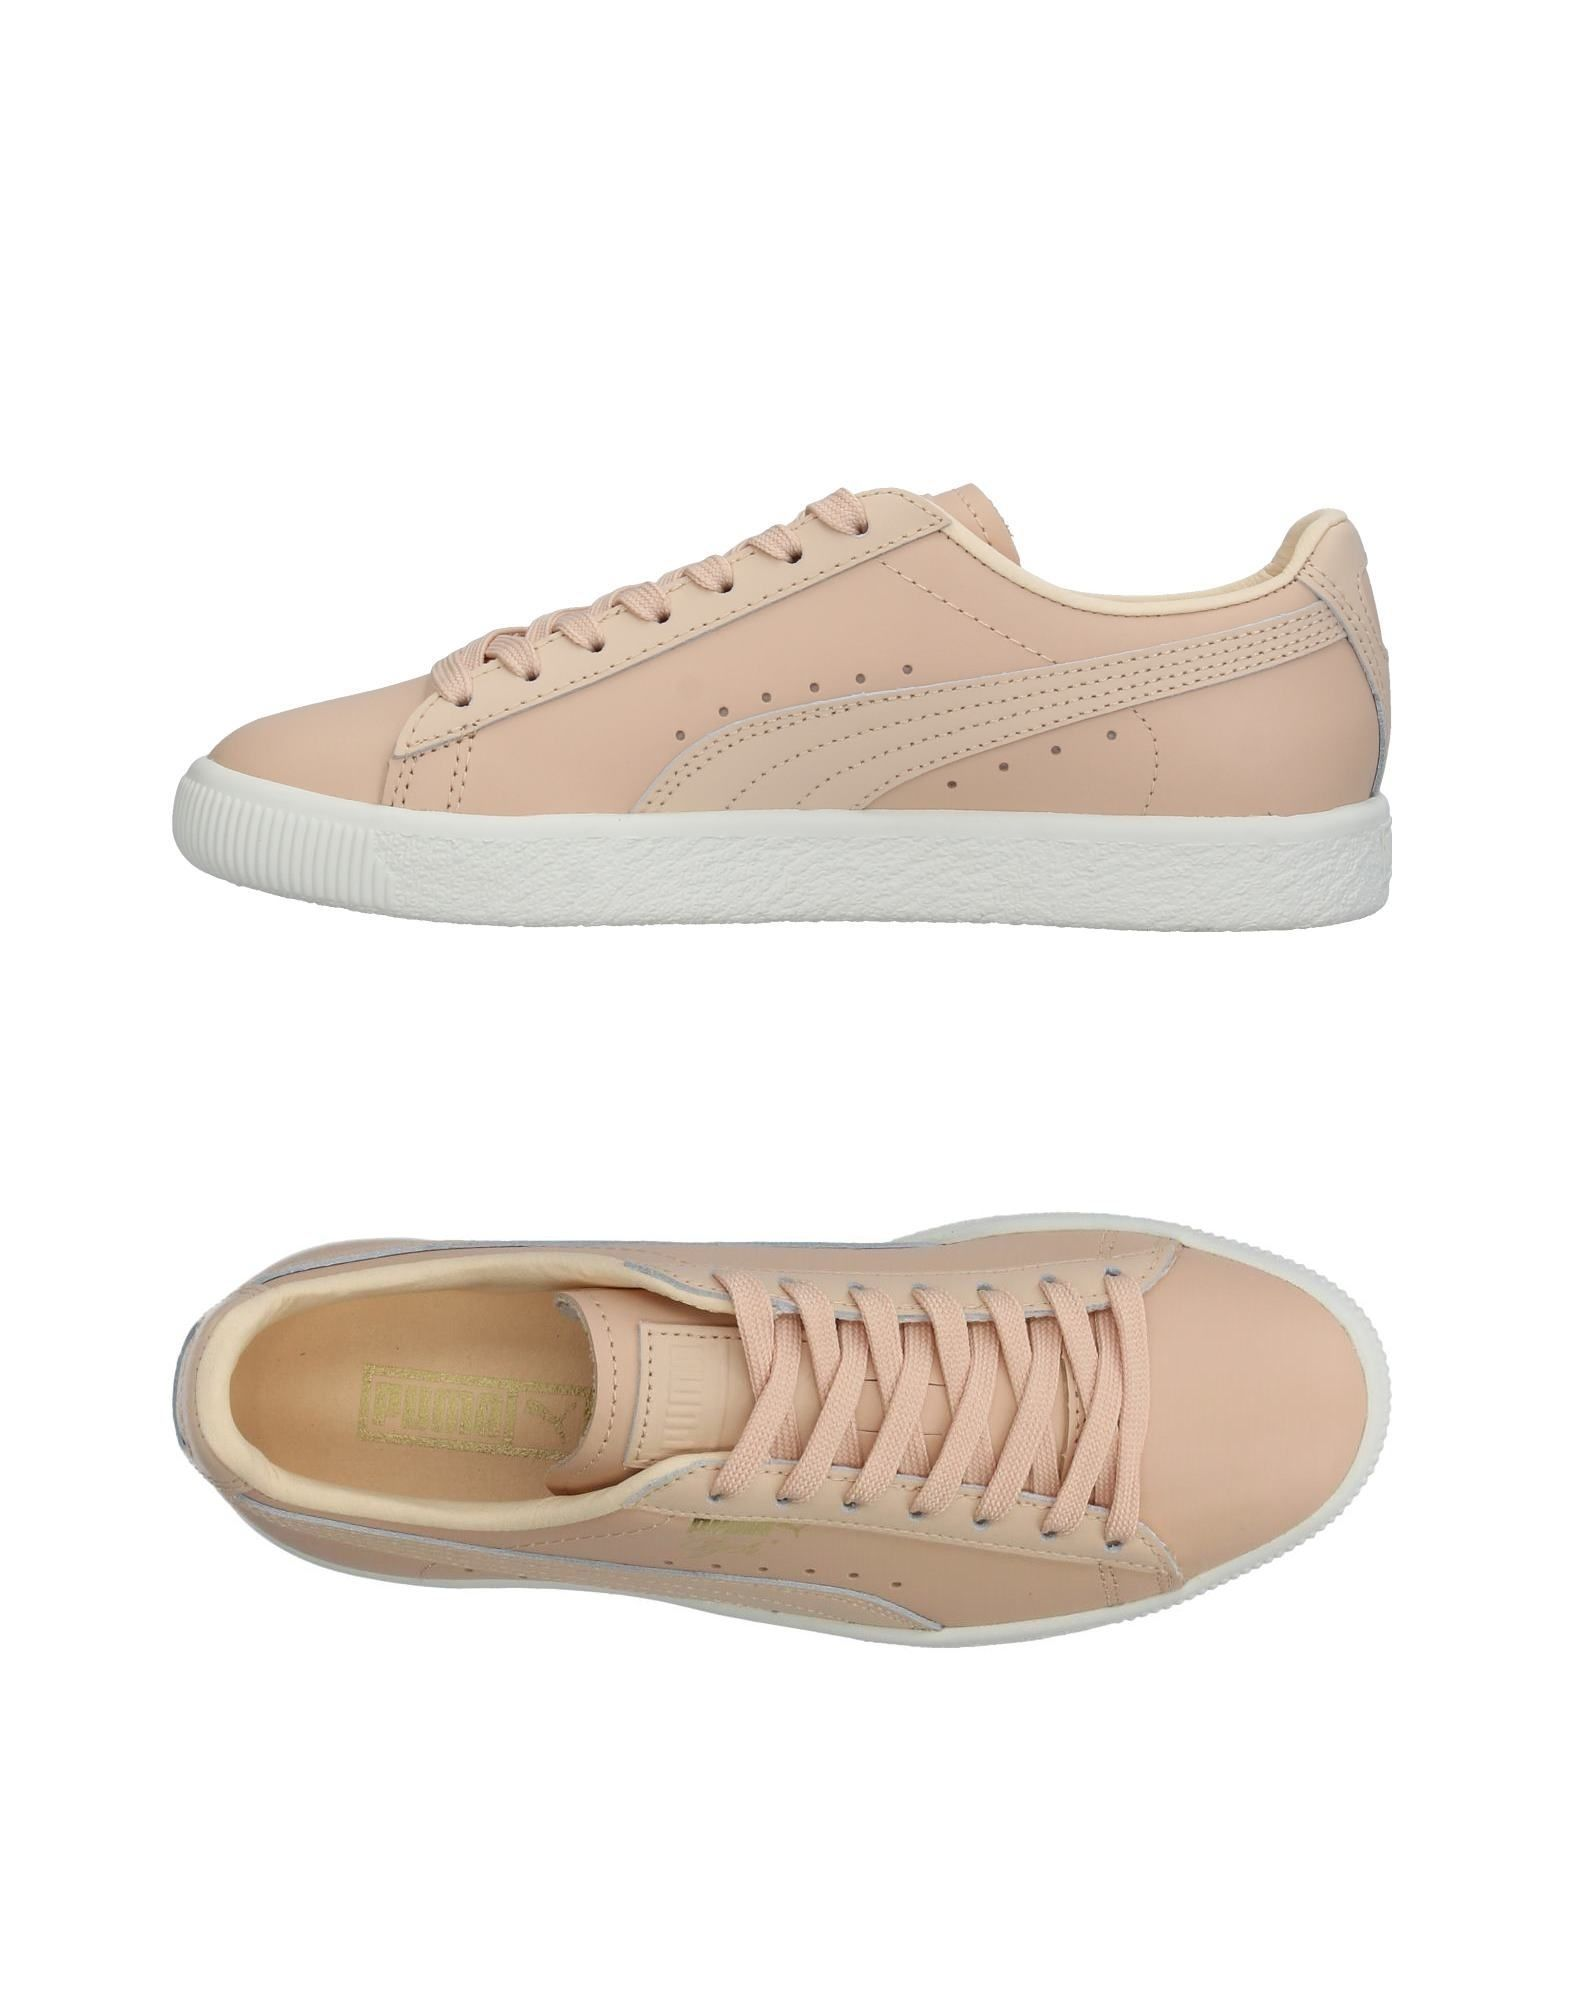 Sneakers Puma Donna - 11326424ON Scarpe economiche e buone